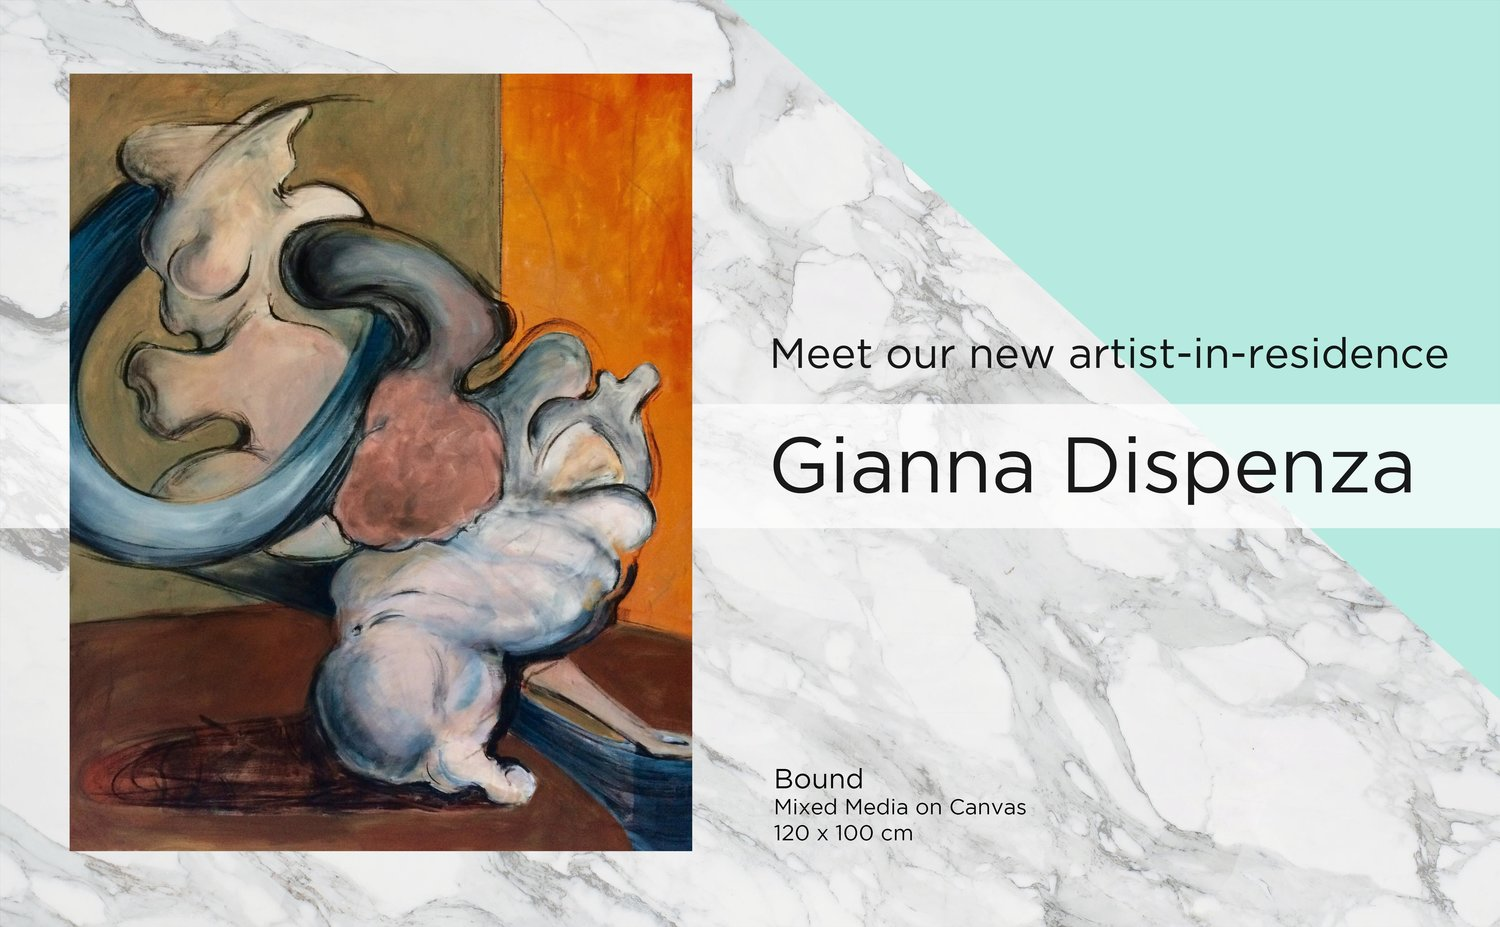 Visit The BAR For The Open Studios of Gianna Dispenza